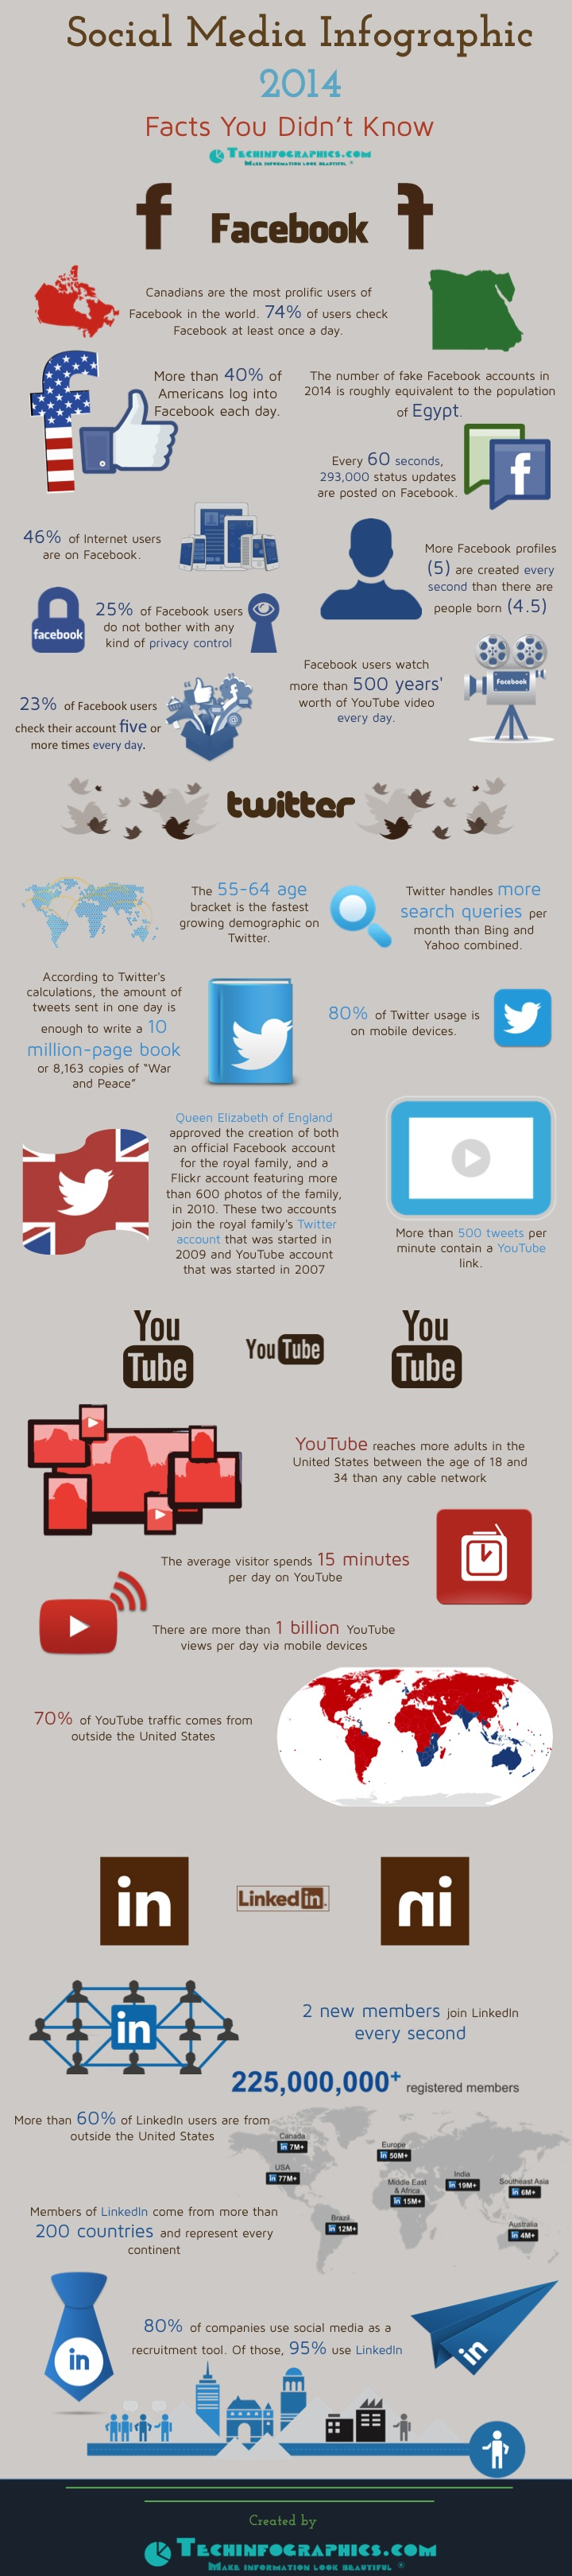 Social Media Facts You Didn't Know - Infographic